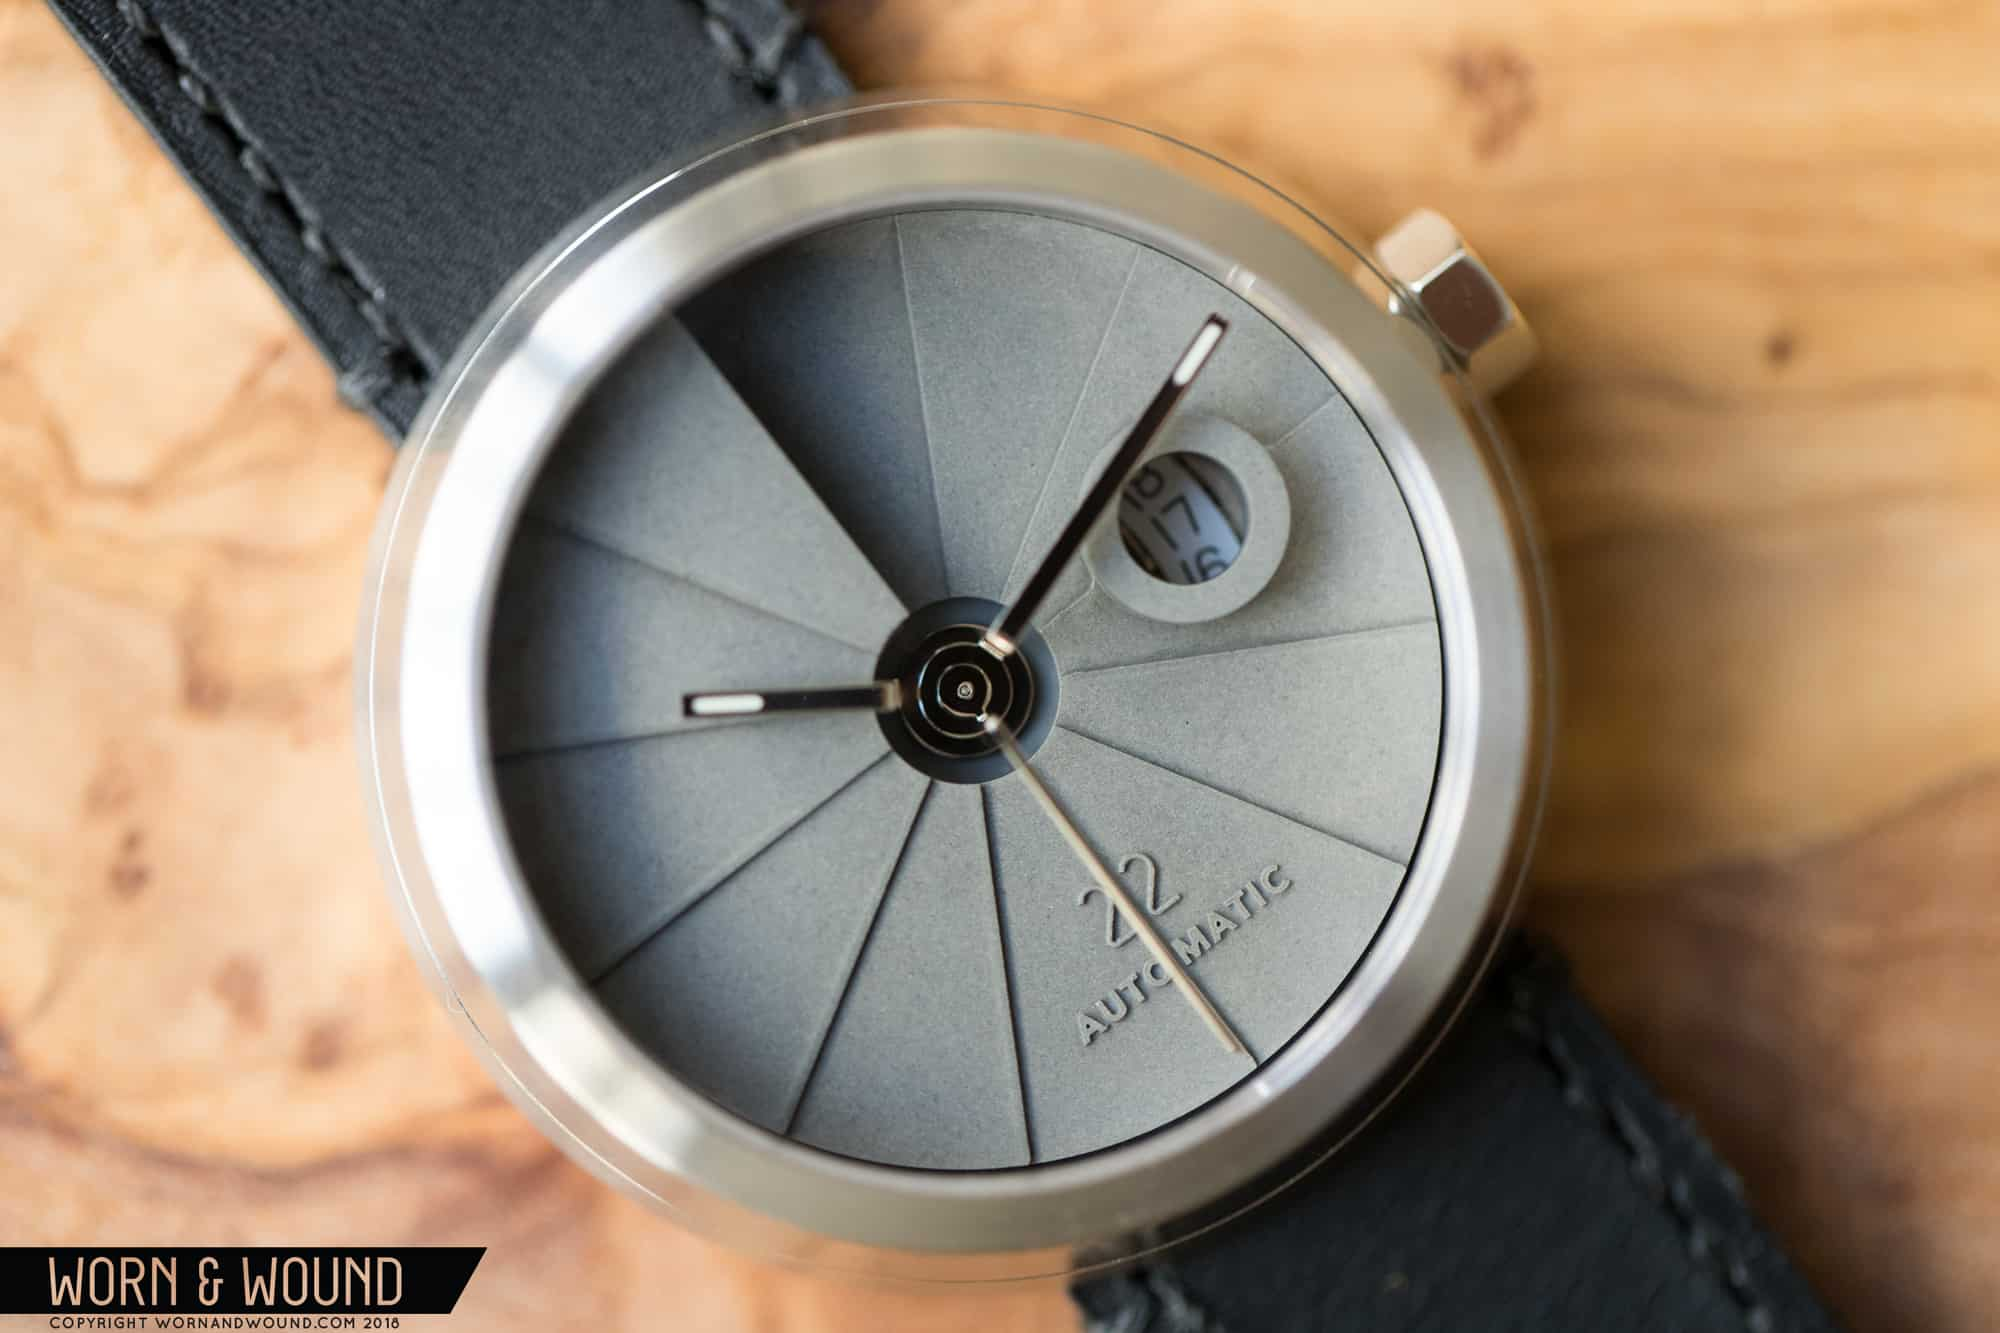 Hands-On with the 4th Dimension Concrete Watch Minimal Edition from 22 Design Studio